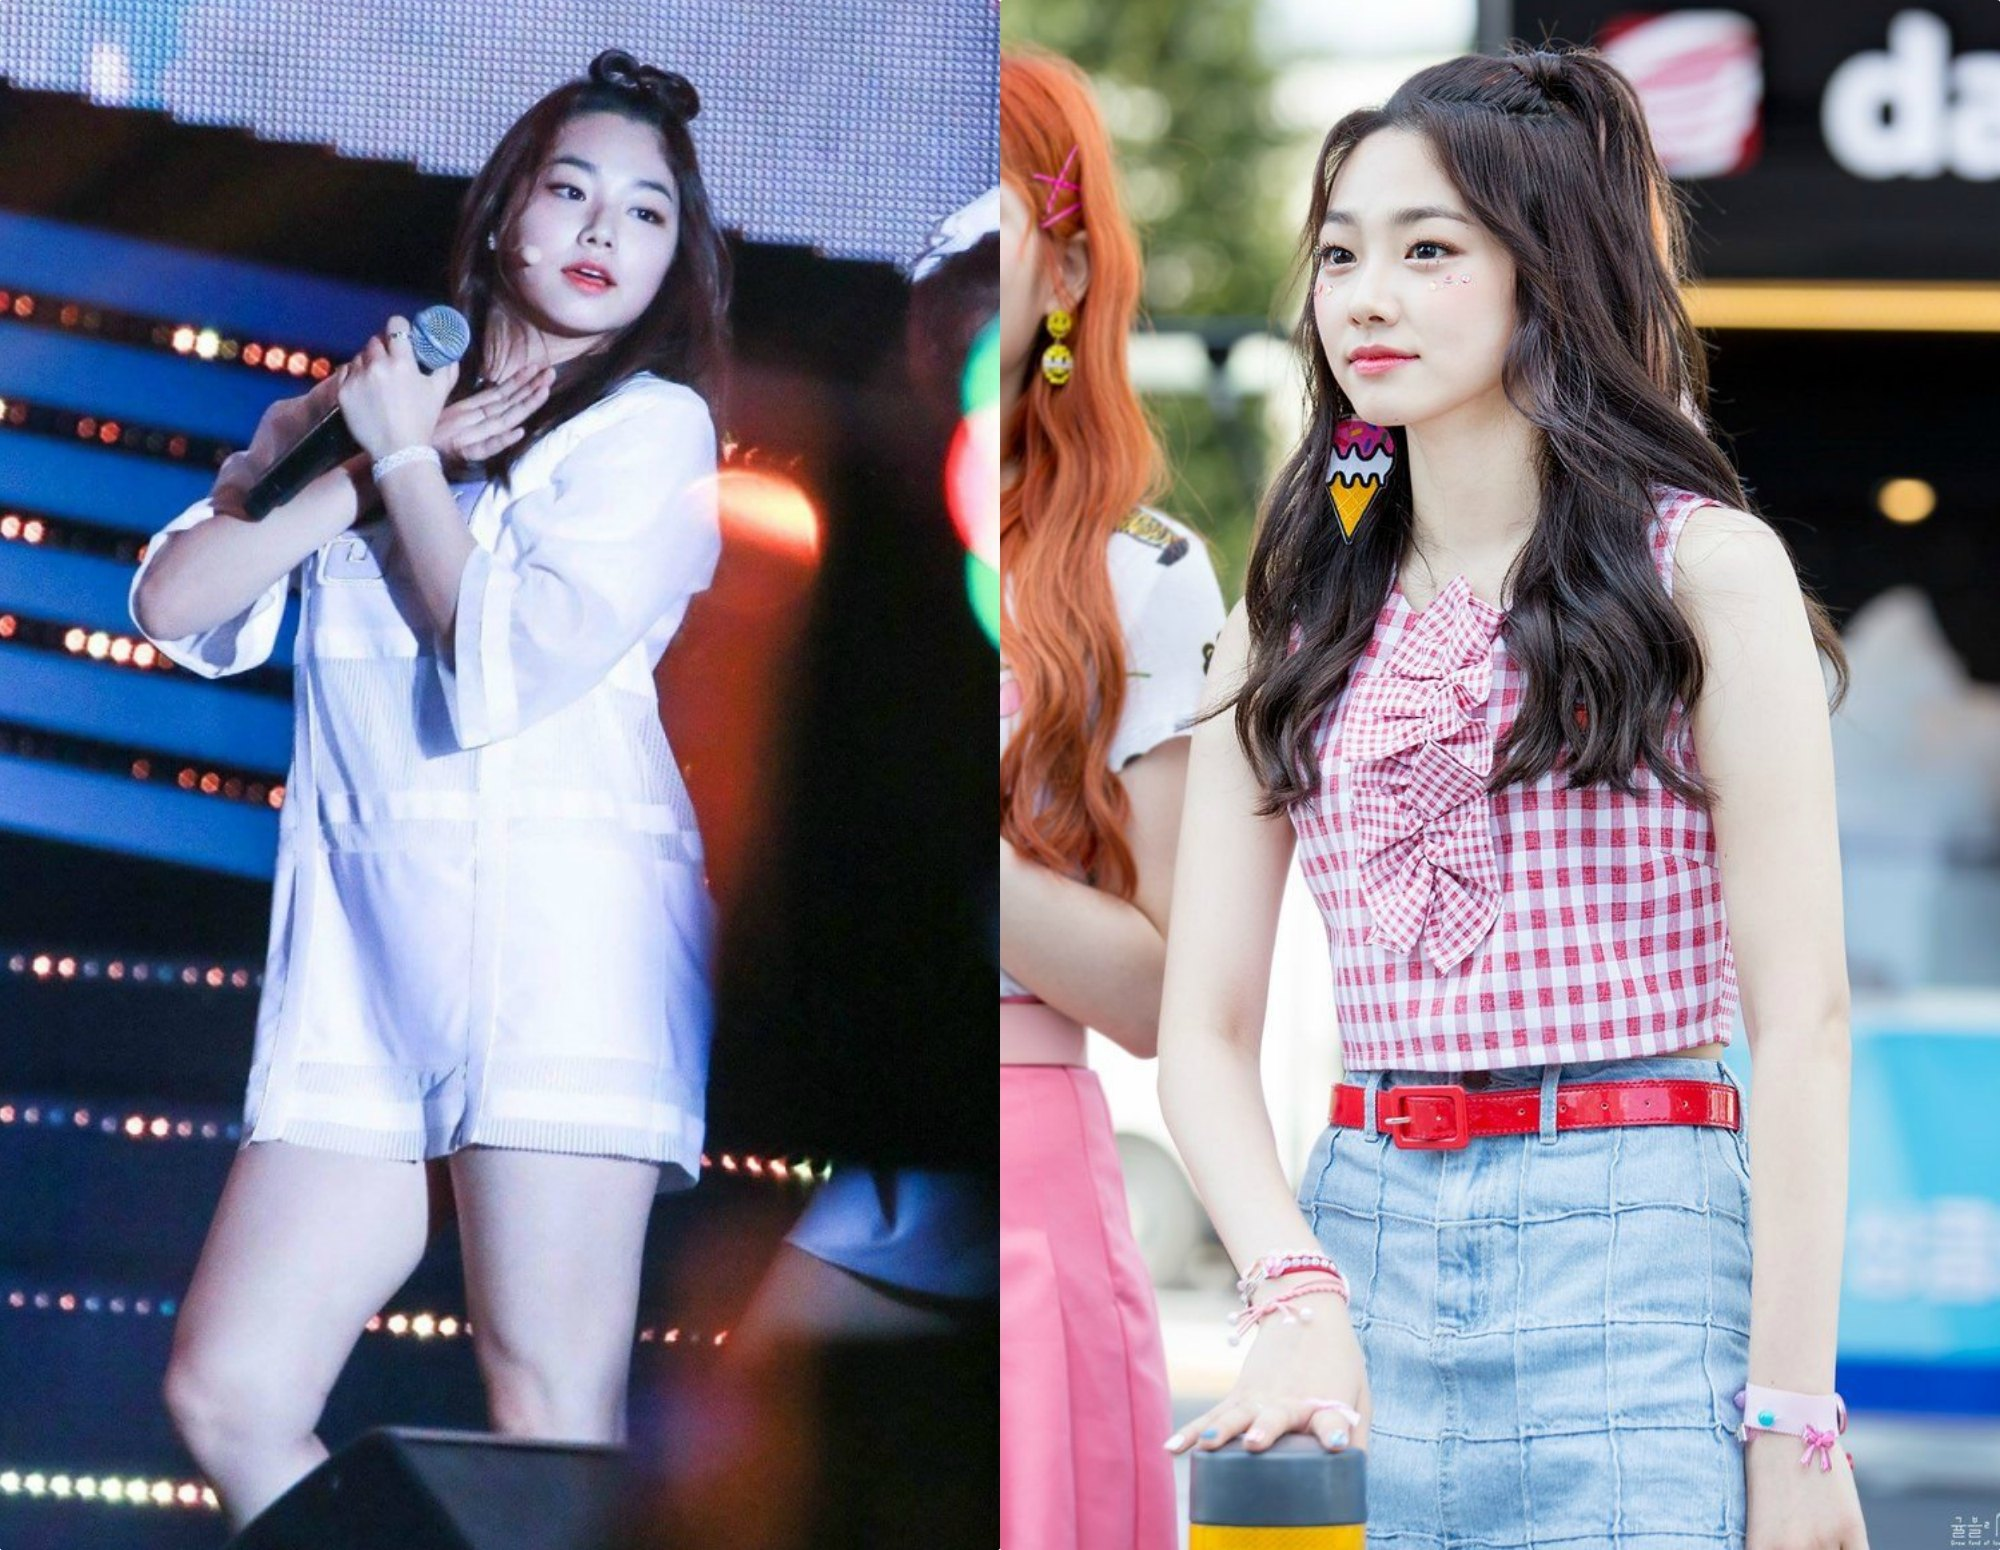 11 idols who went through extreme weight loss - Koreaboo